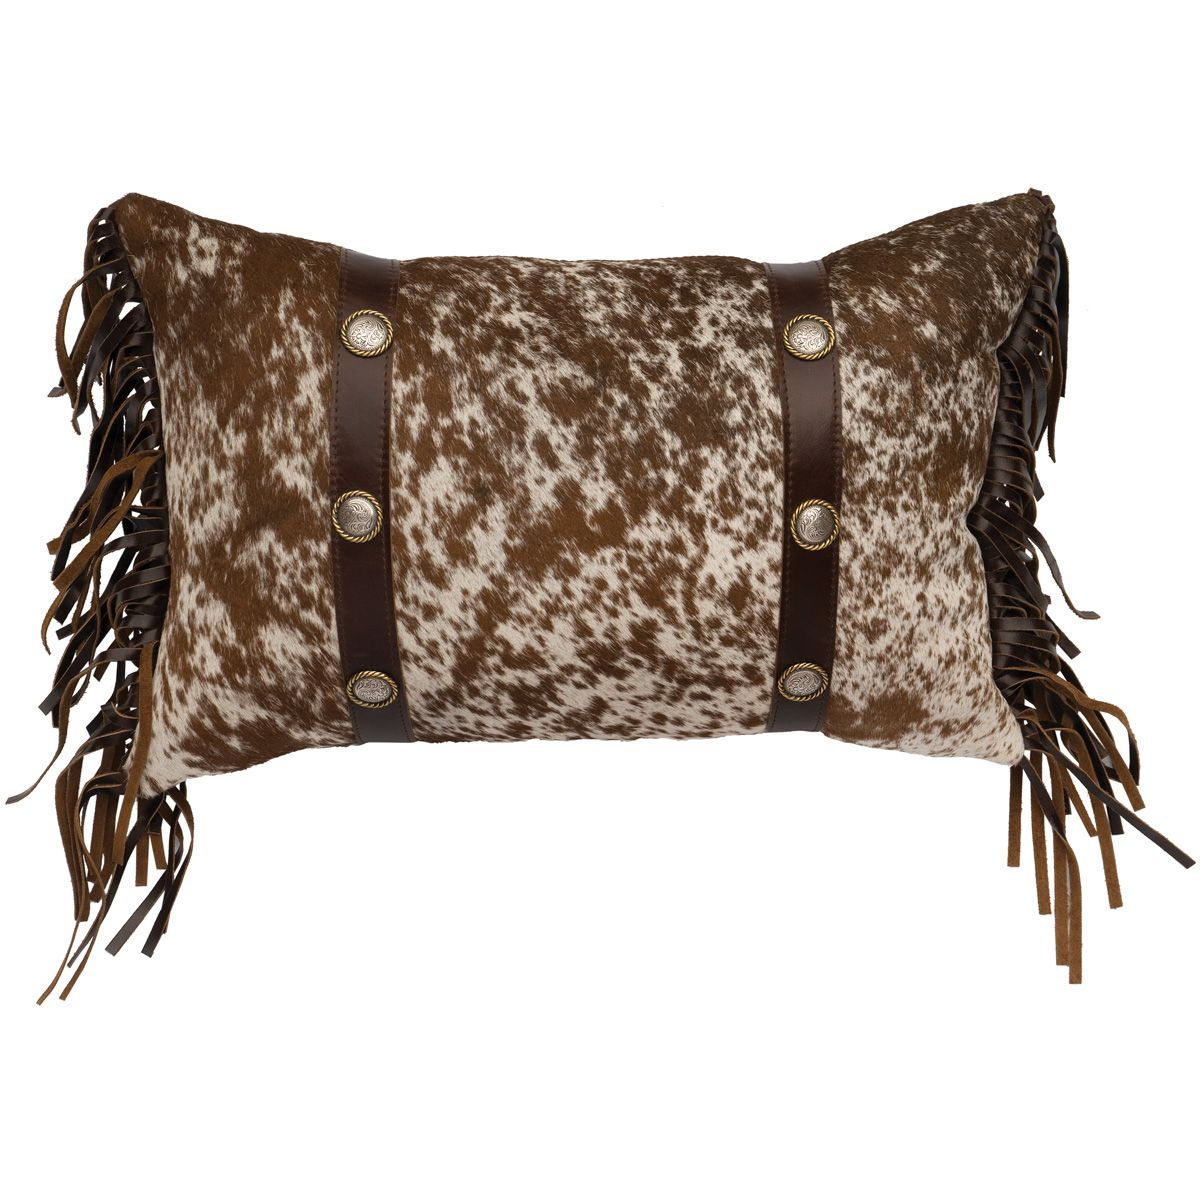 Speckled Hair on Hide with Leather Bands Pillow